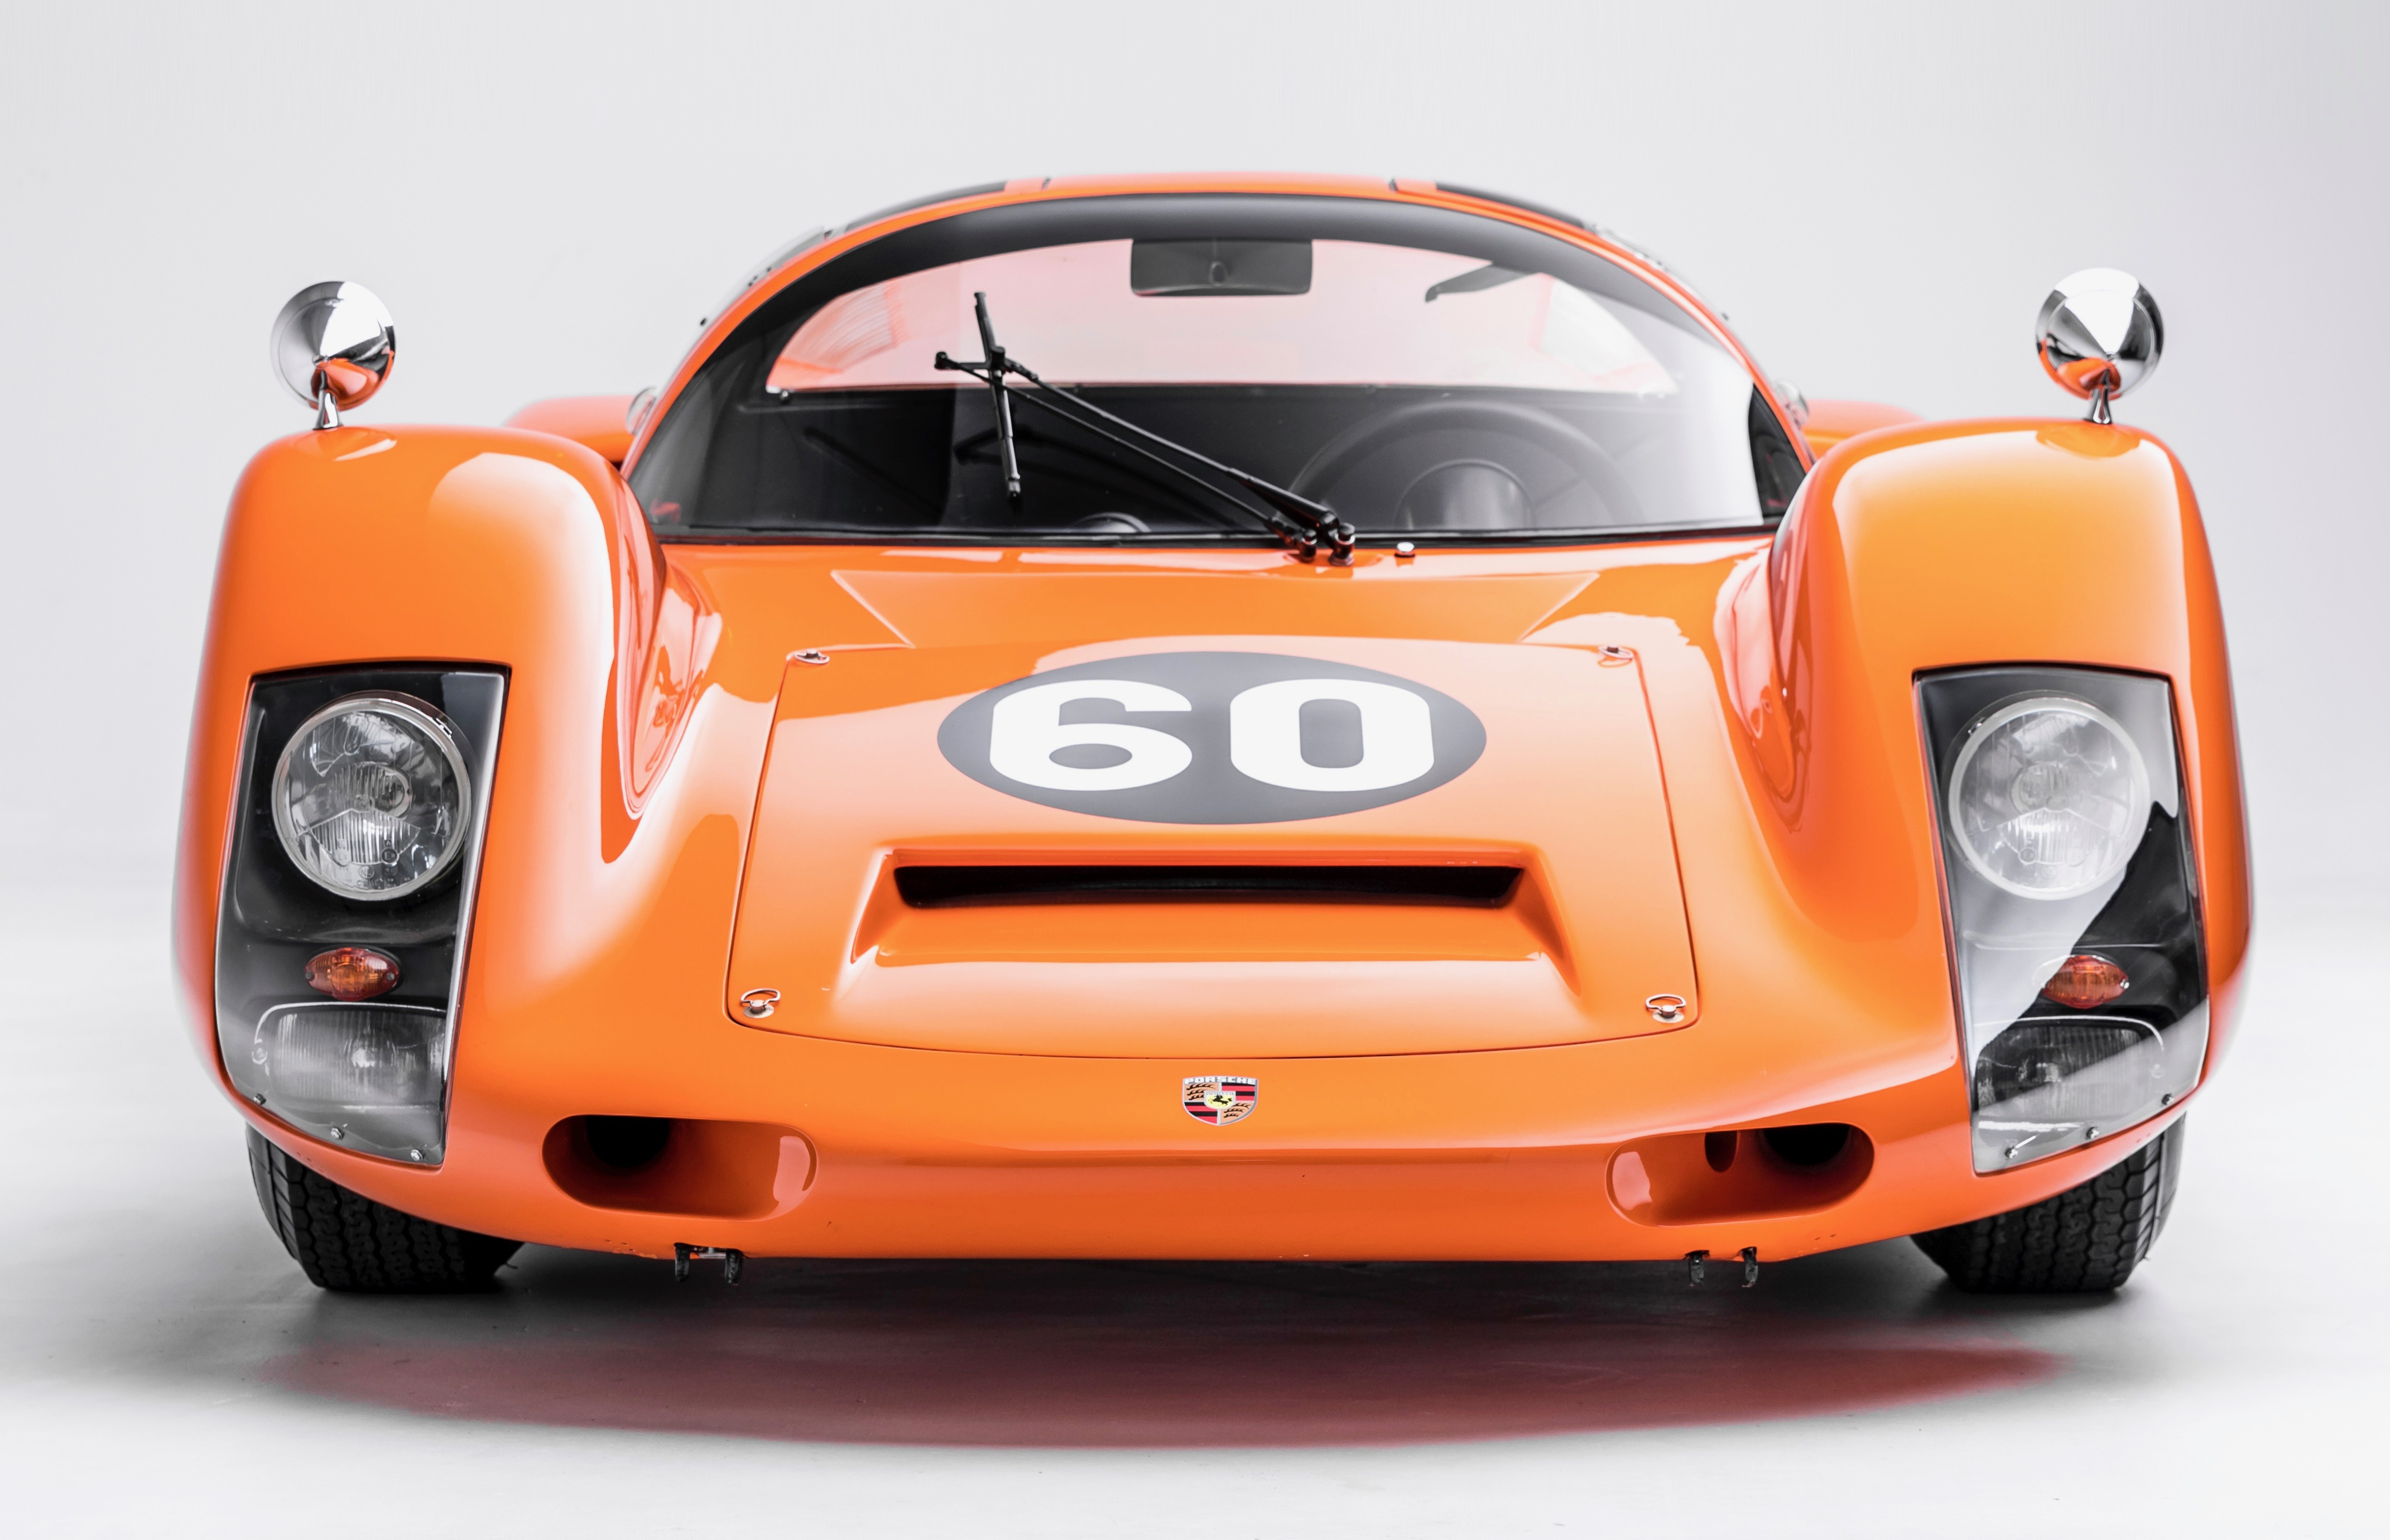 , Petersen's Porsche exhibit to present 50 of the marque's most iconic vehicles, ClassicCars.com Journal